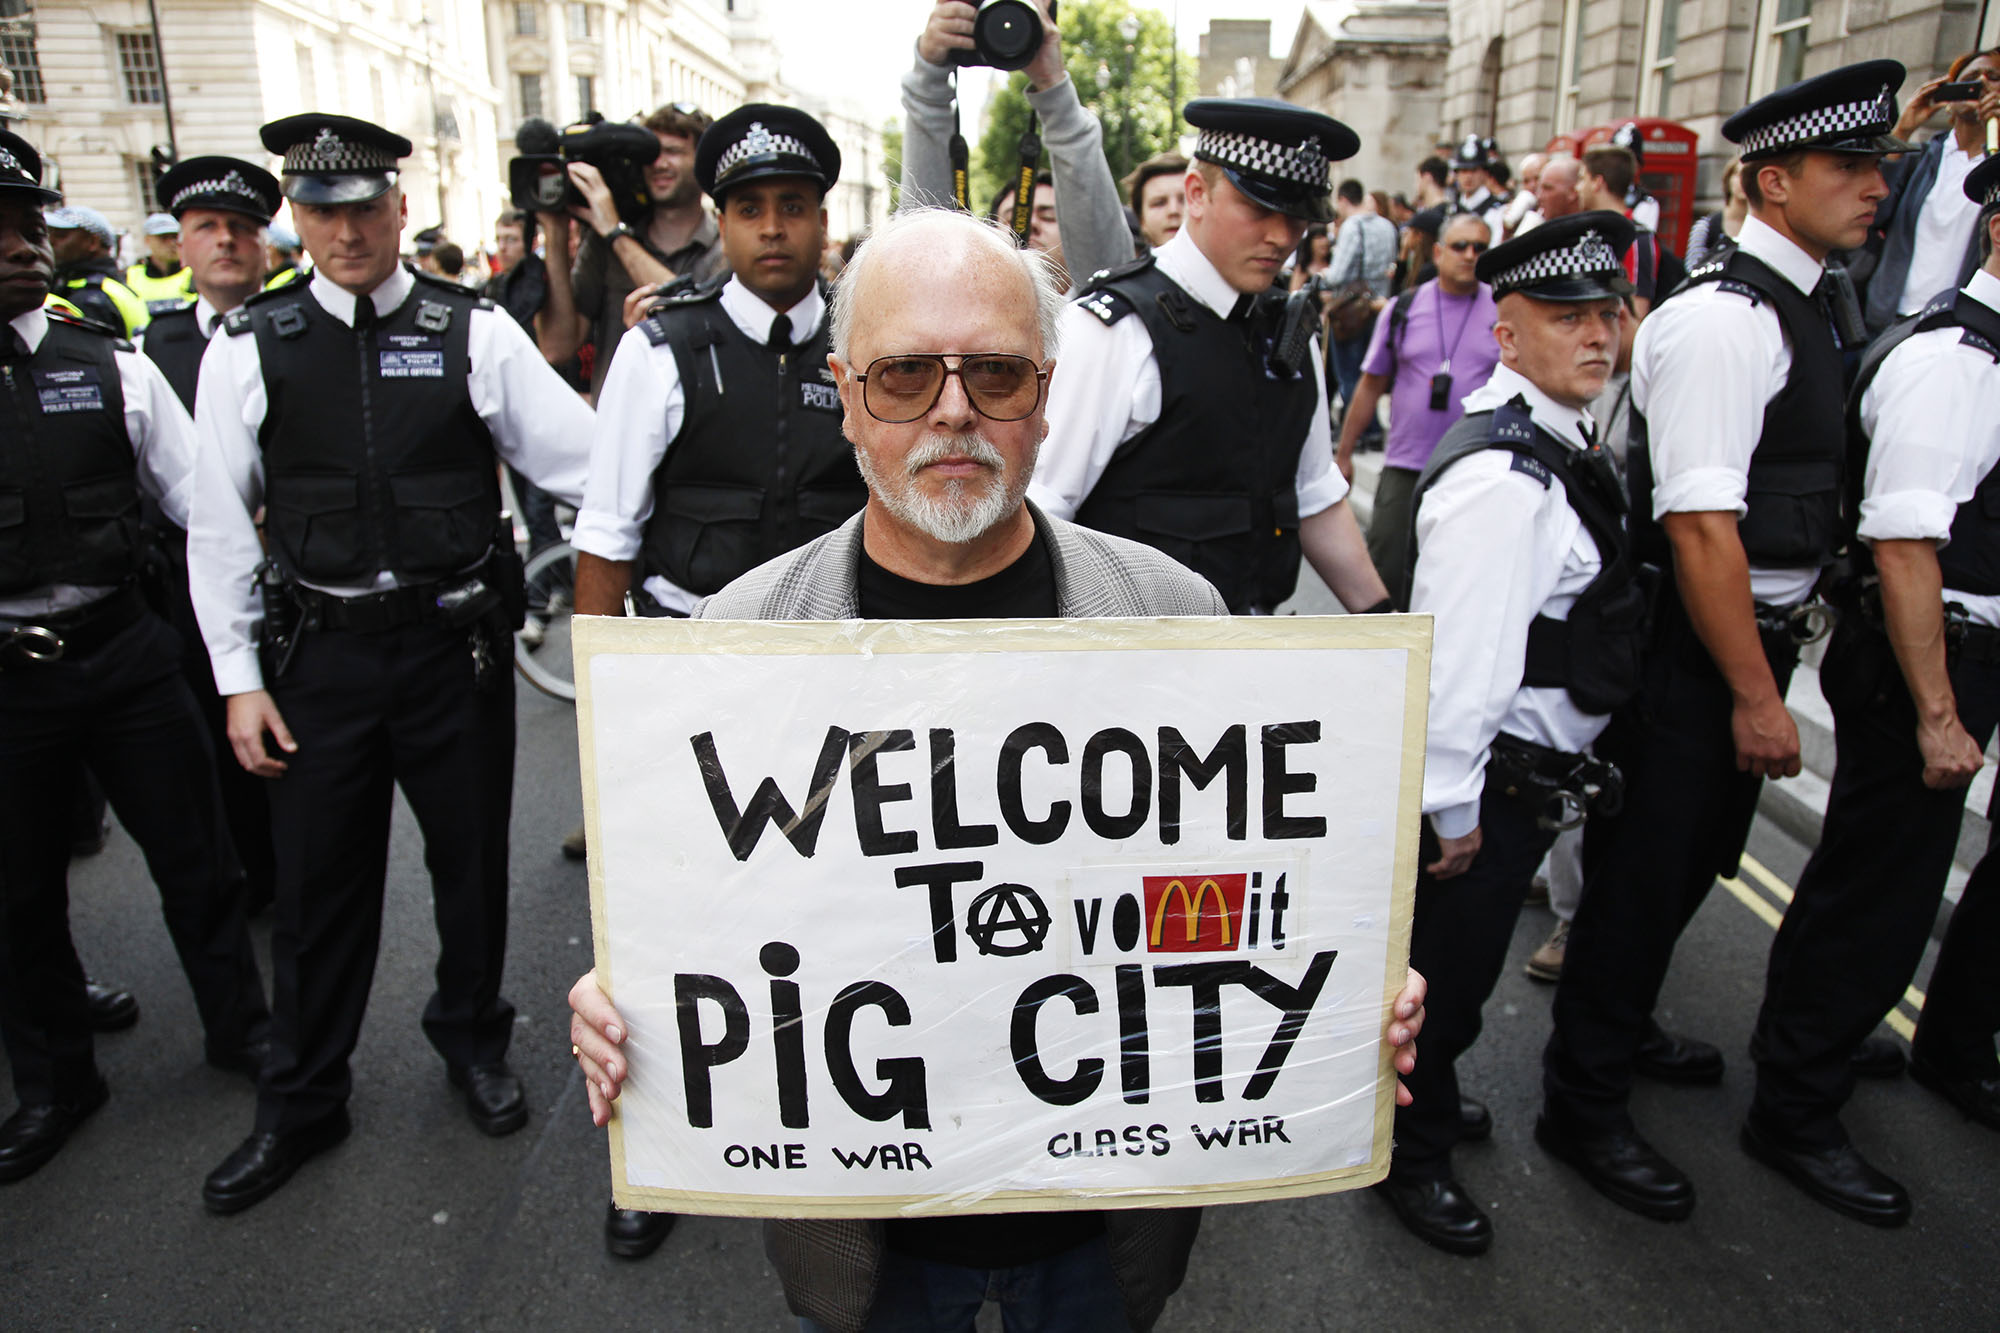 Welcome to Pig City, a regular on the demo circuit.